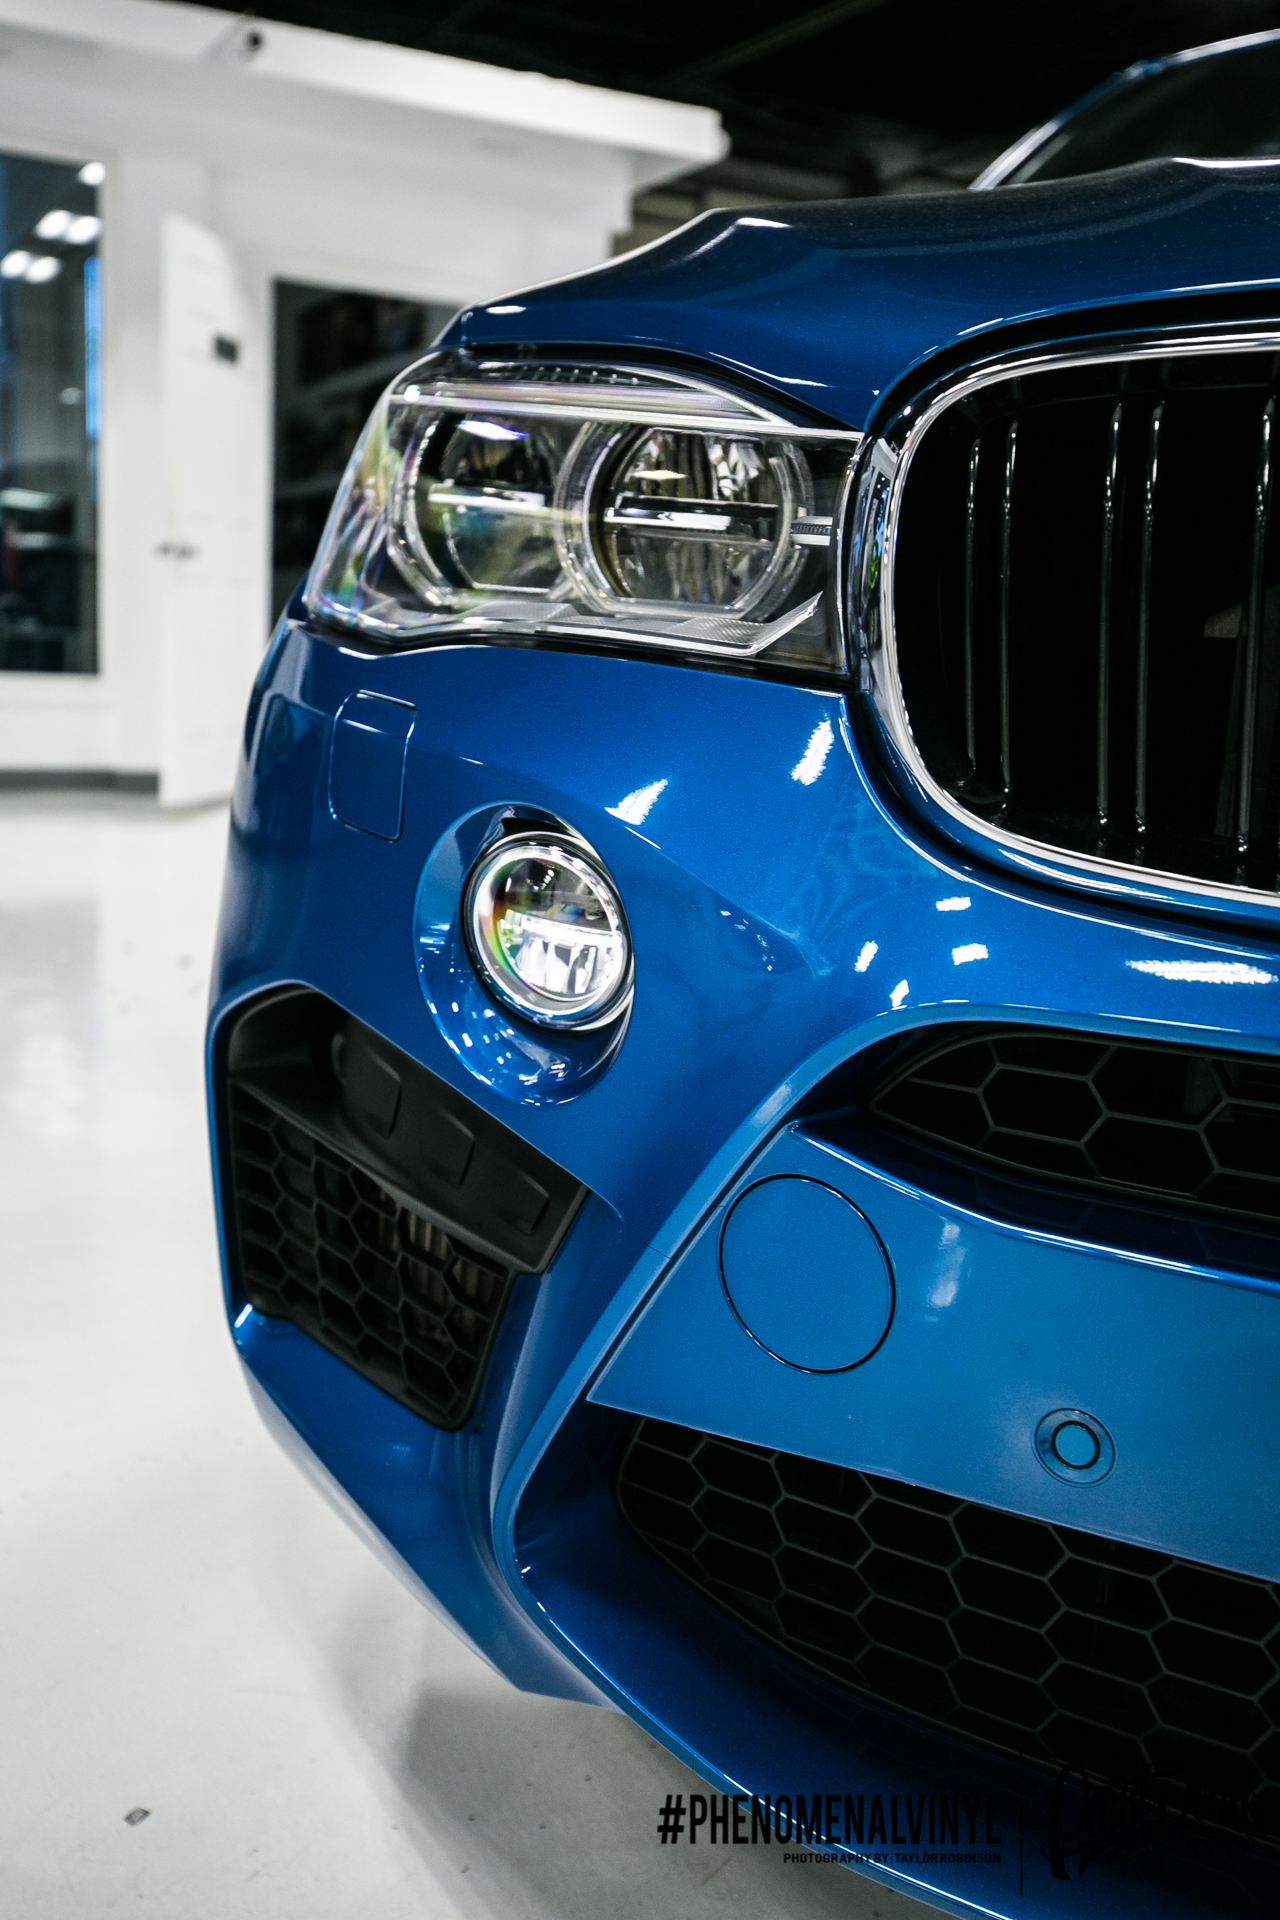 2015 Bmw X6m In Xpel Clear Paint Protection Film Front